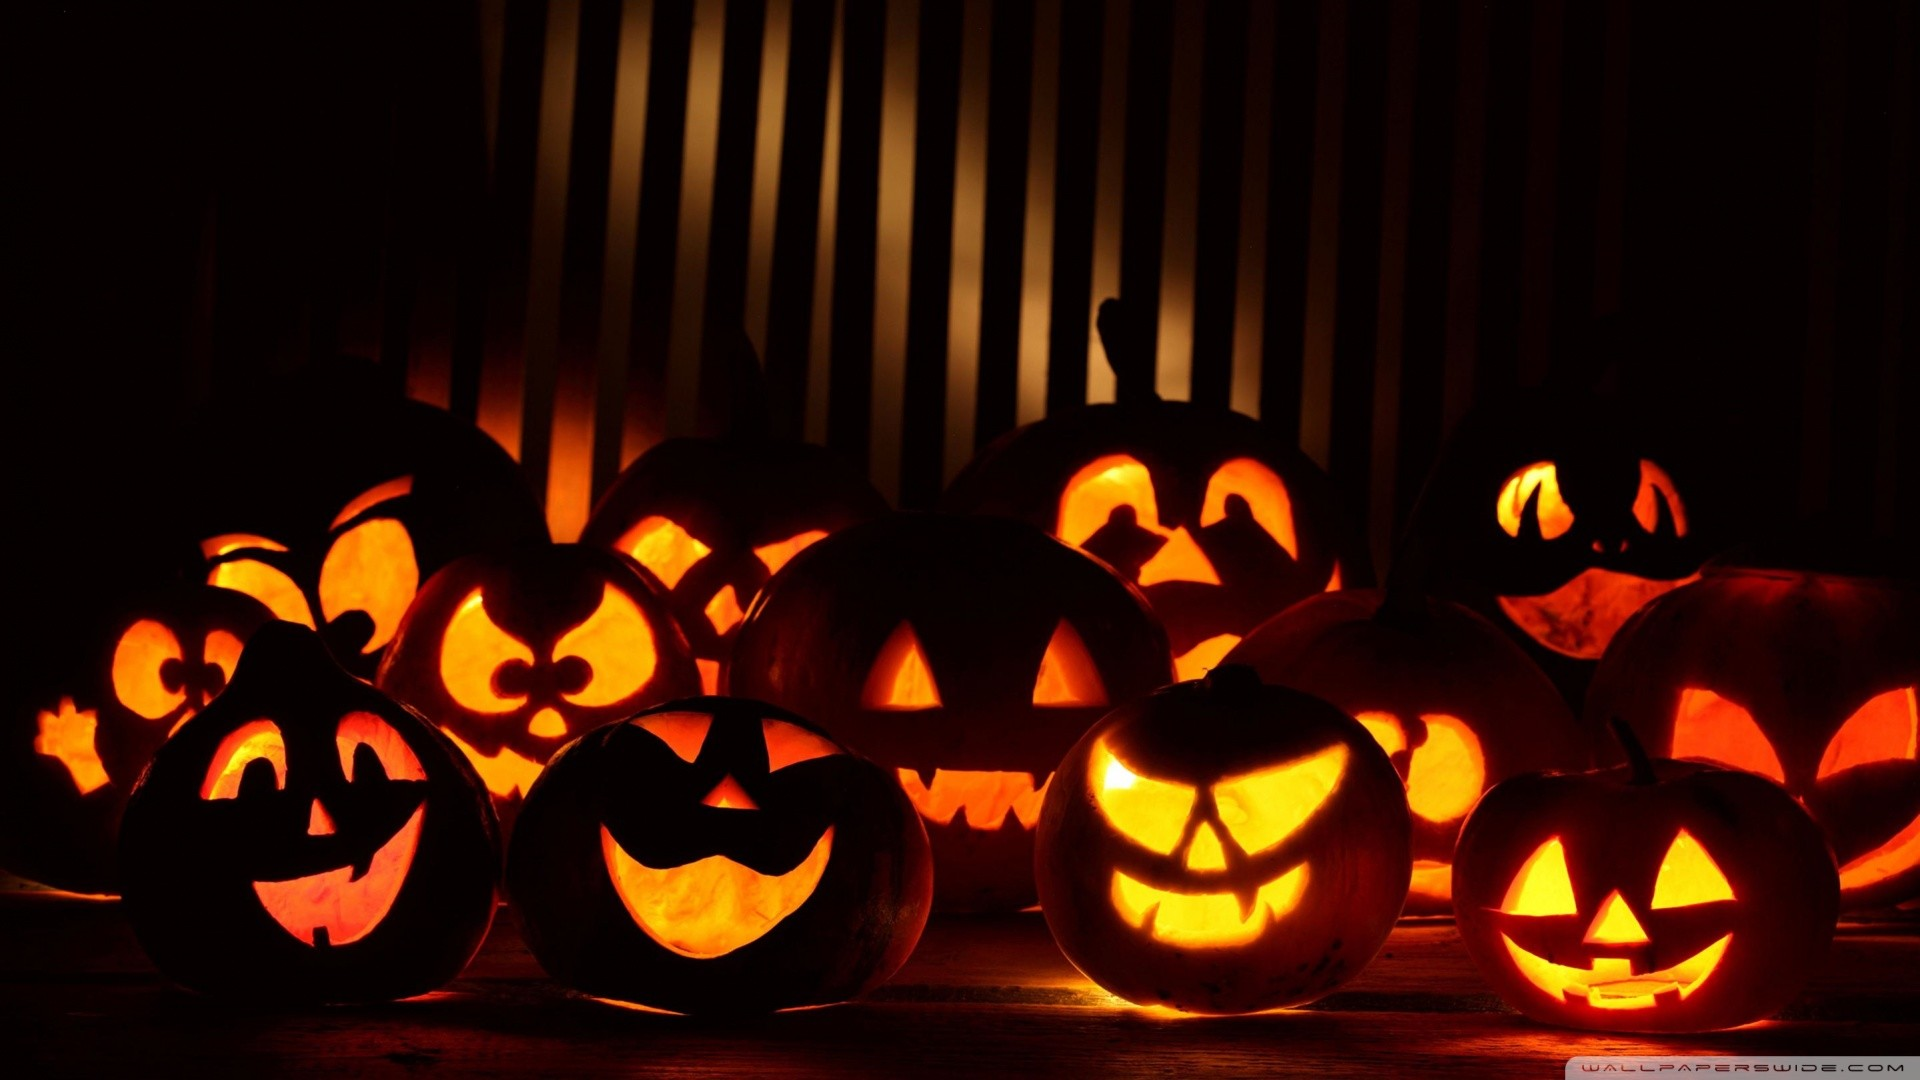 1920x1080 halloween, hd wallpapers, hd halloween, hd images, halloween hd, hd  halloween